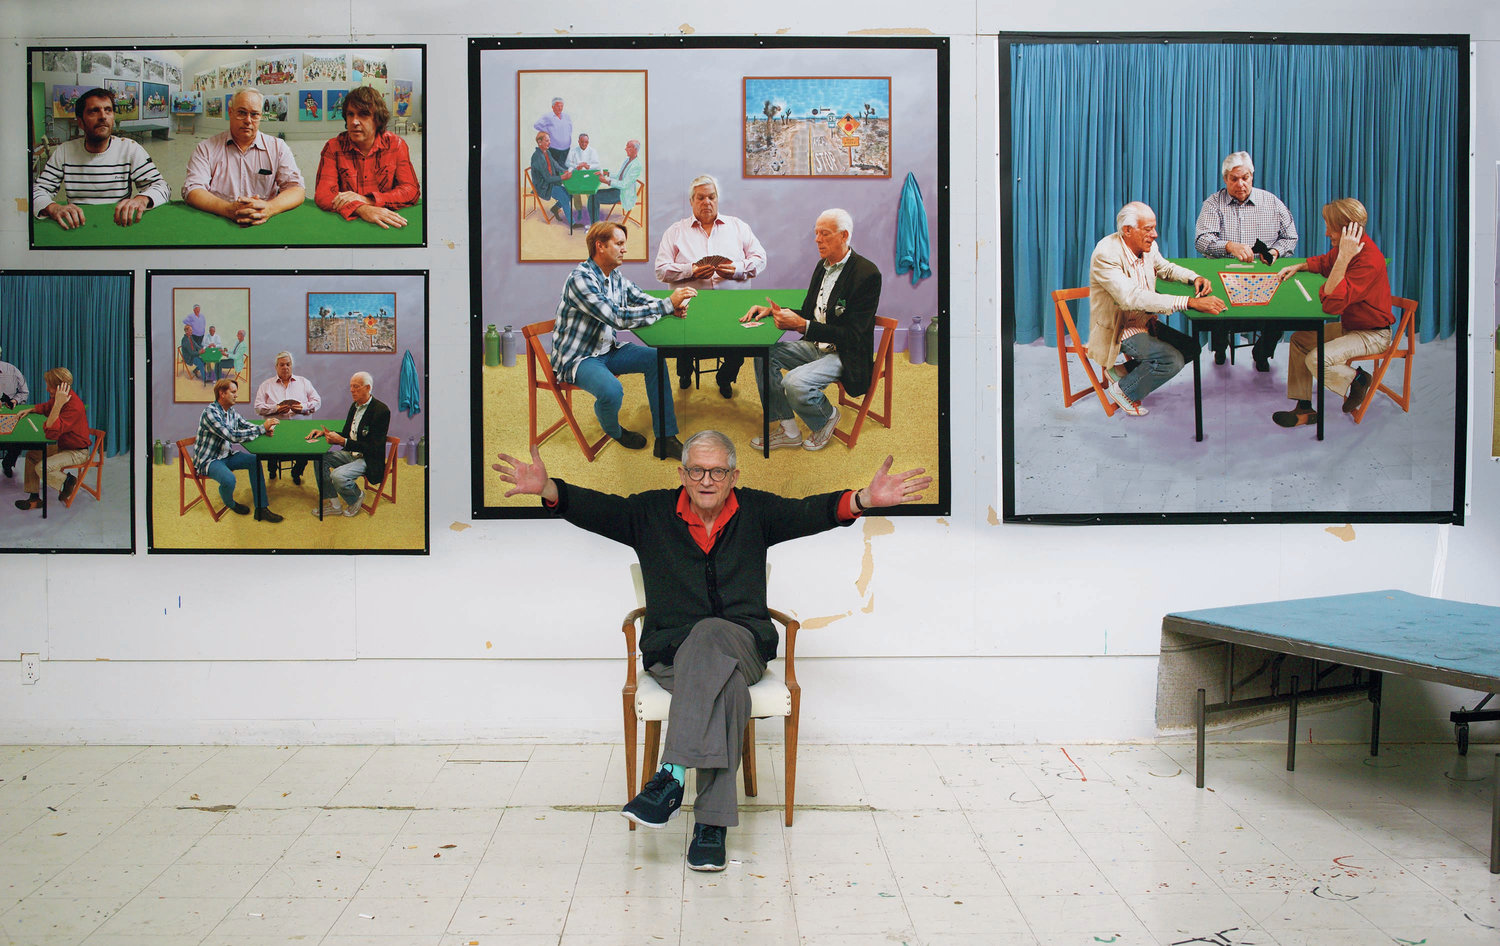 """In a recent series of photographic drawings, David Hockney, shown above in his studio, plays with the relationship between painting and photography."" (image via Richard Schmidt/David Hockney/Abrams Books)"